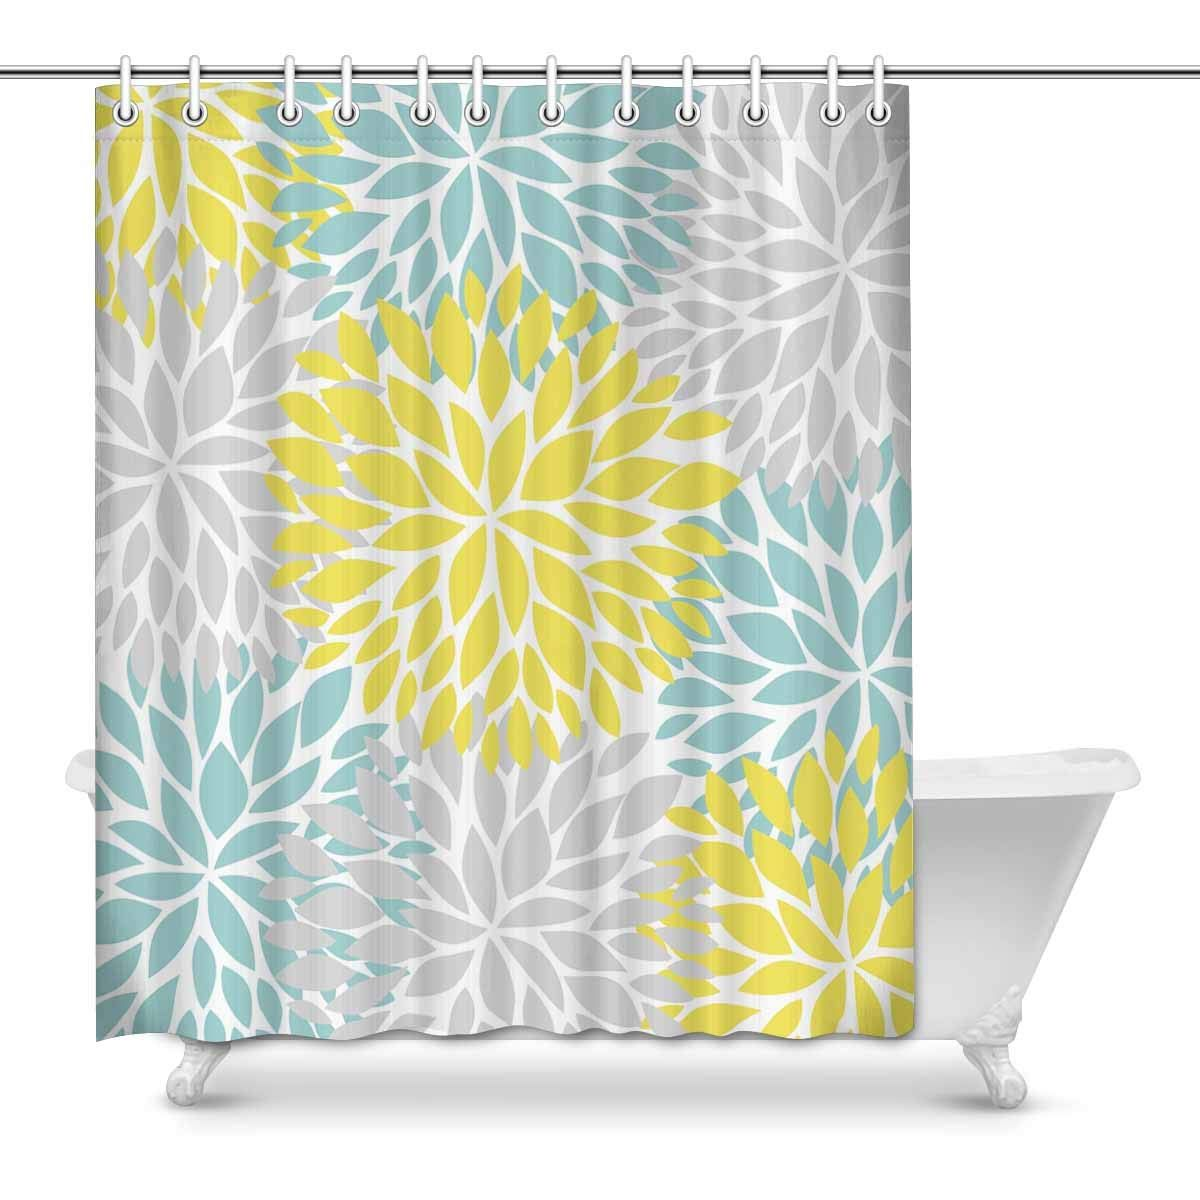 11 Stylish Ideas How To Improve Dahlia Shower Curtain If You Are